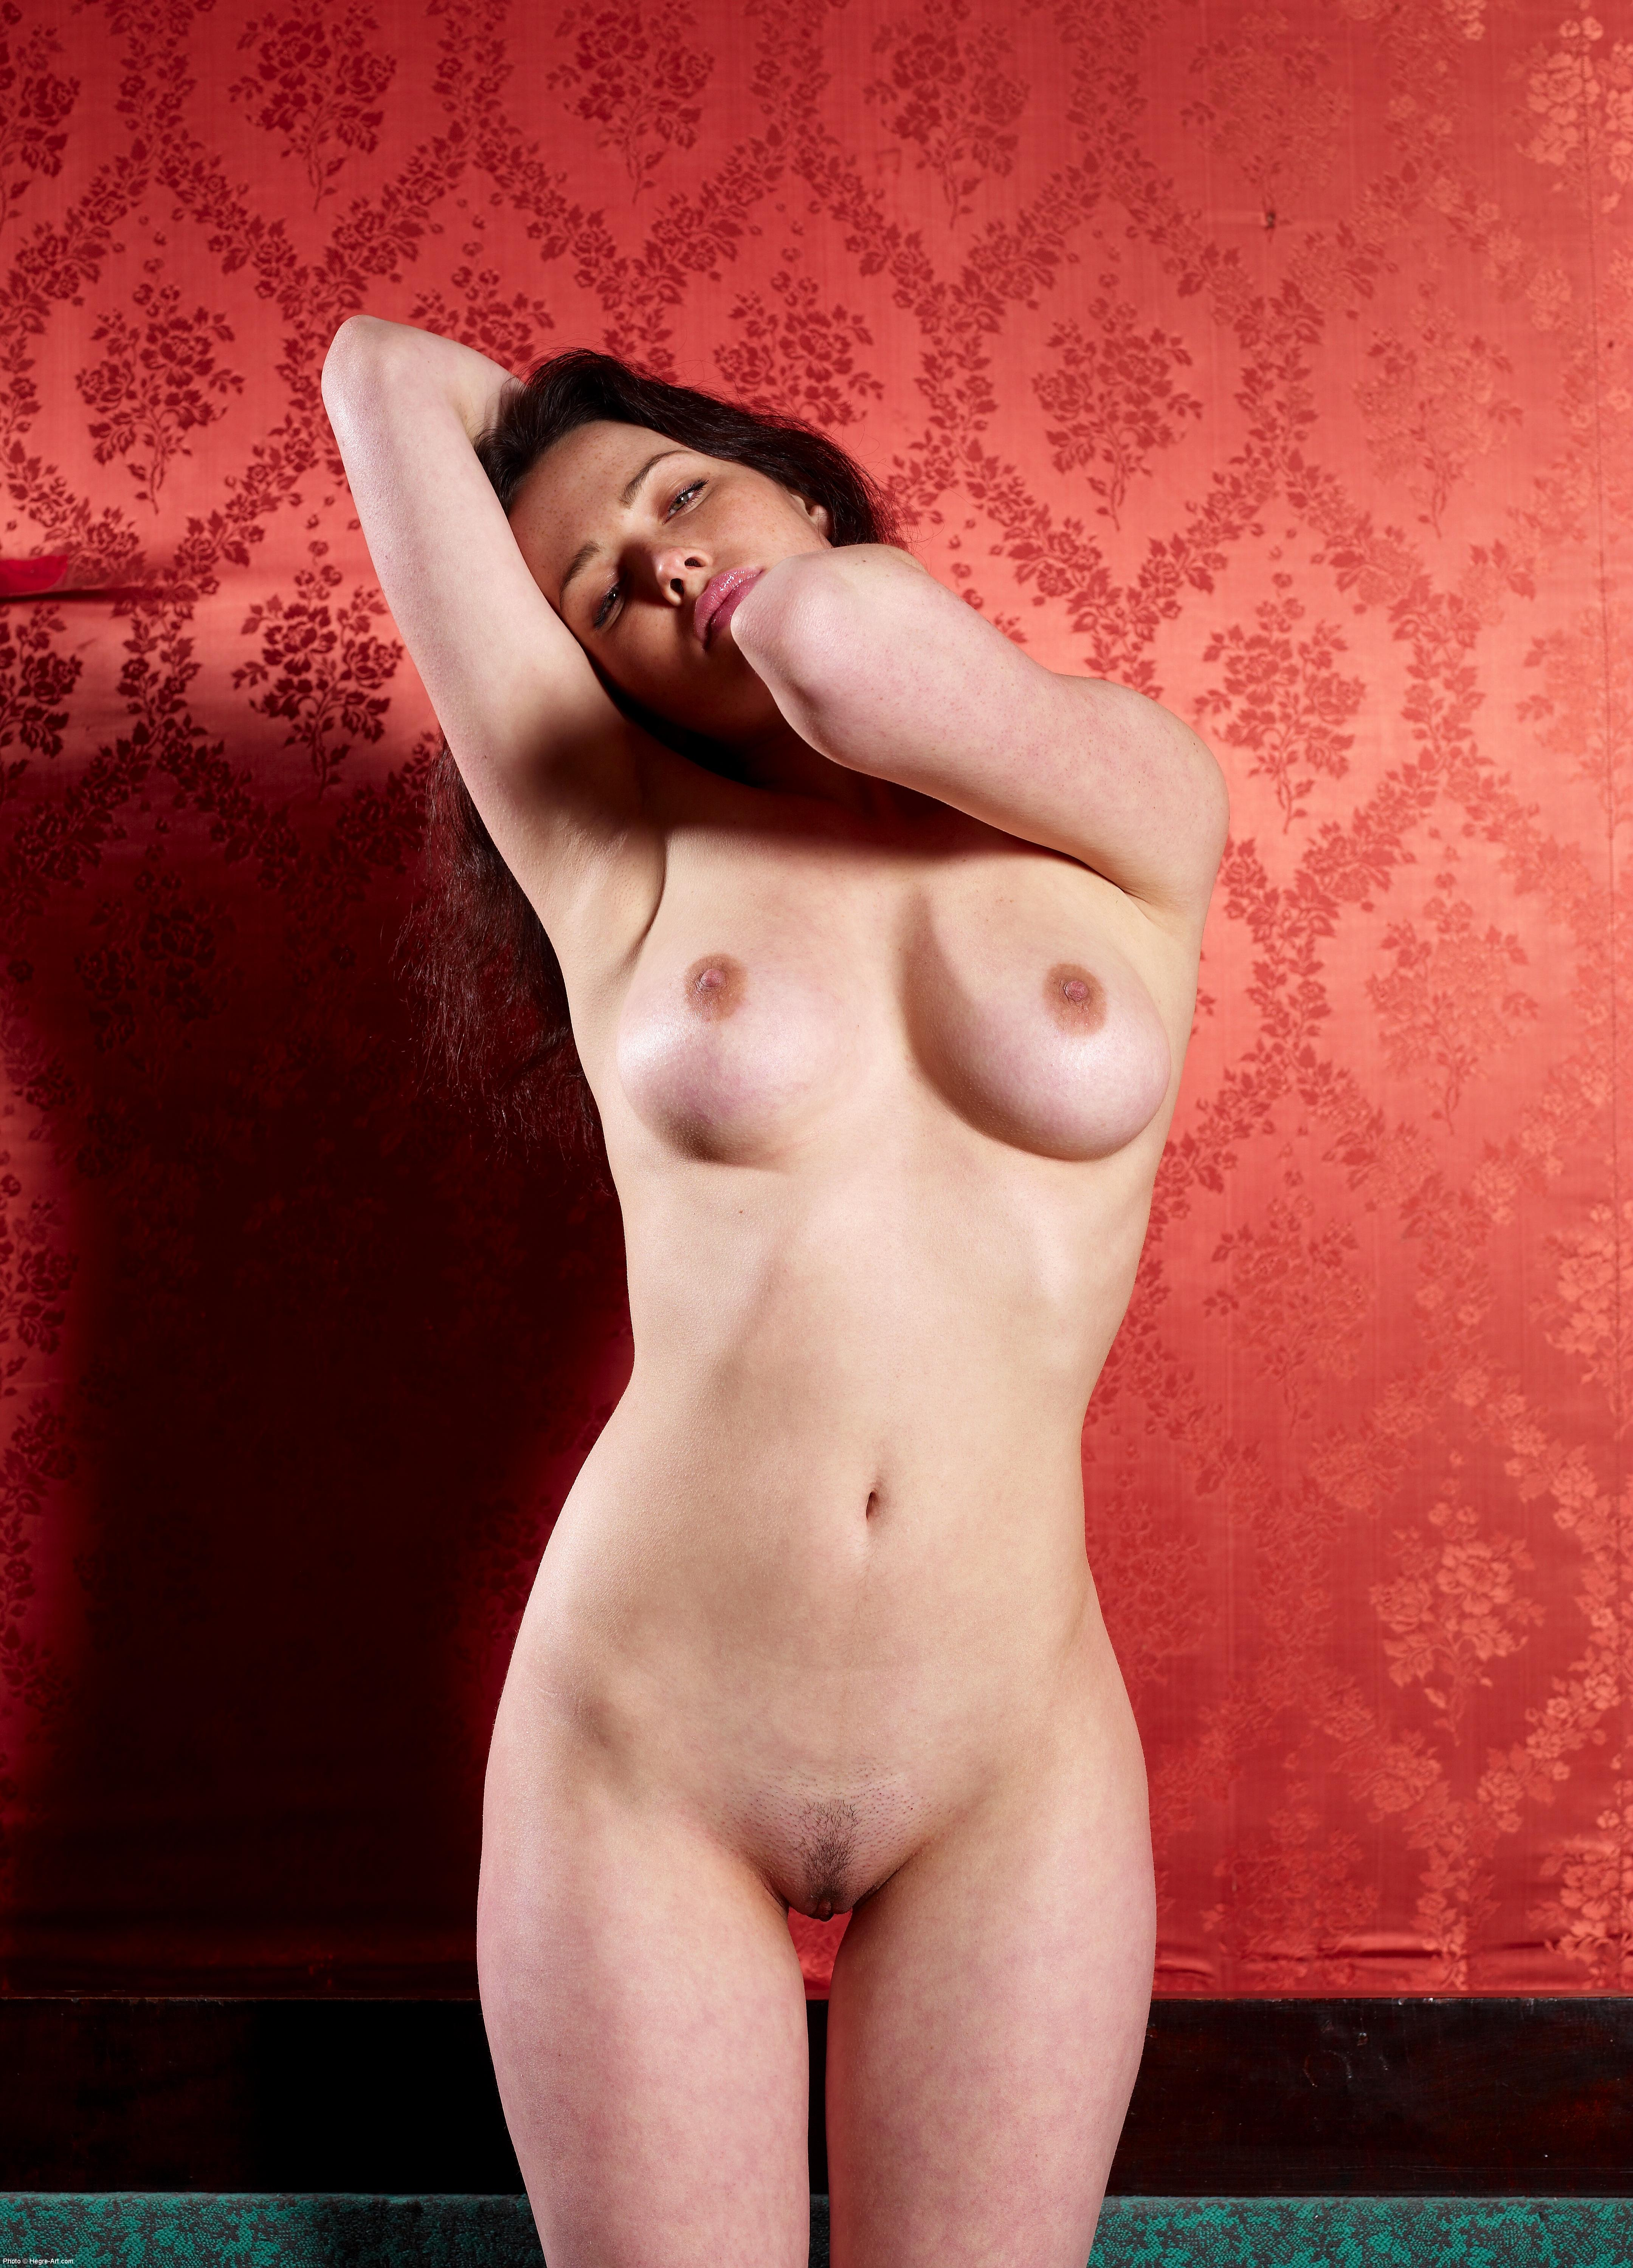 suzi lorraine nude sex video